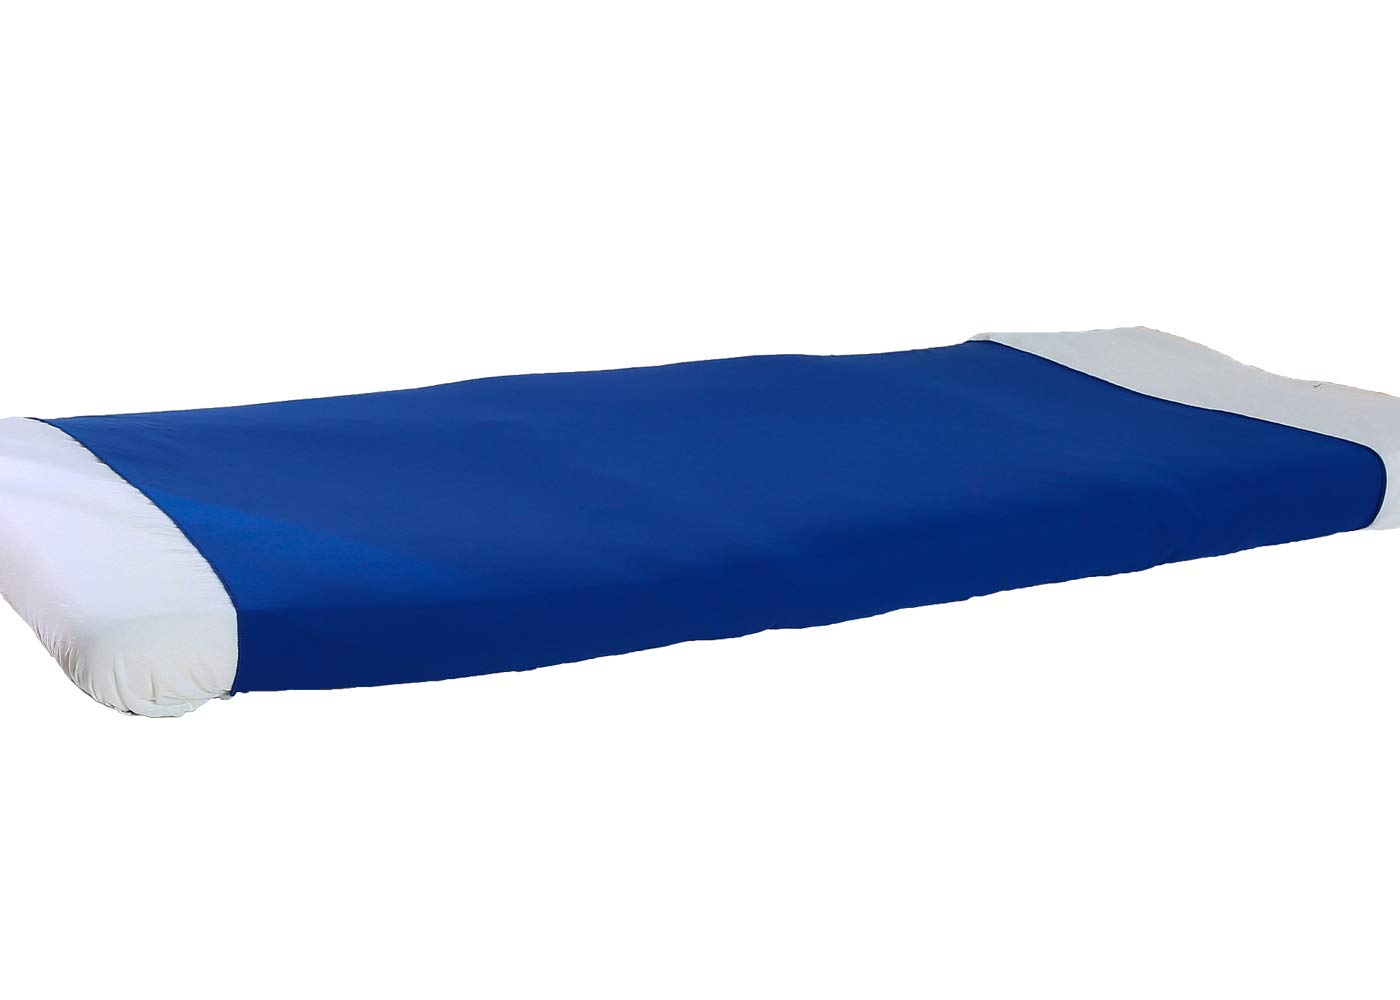 BUZIO Pouch Sensory Bed Sheet for Kids - Compression Alternative to Heavy Blanket, Breathable, Stretchy, Adjustable, Twin, Royal Blue